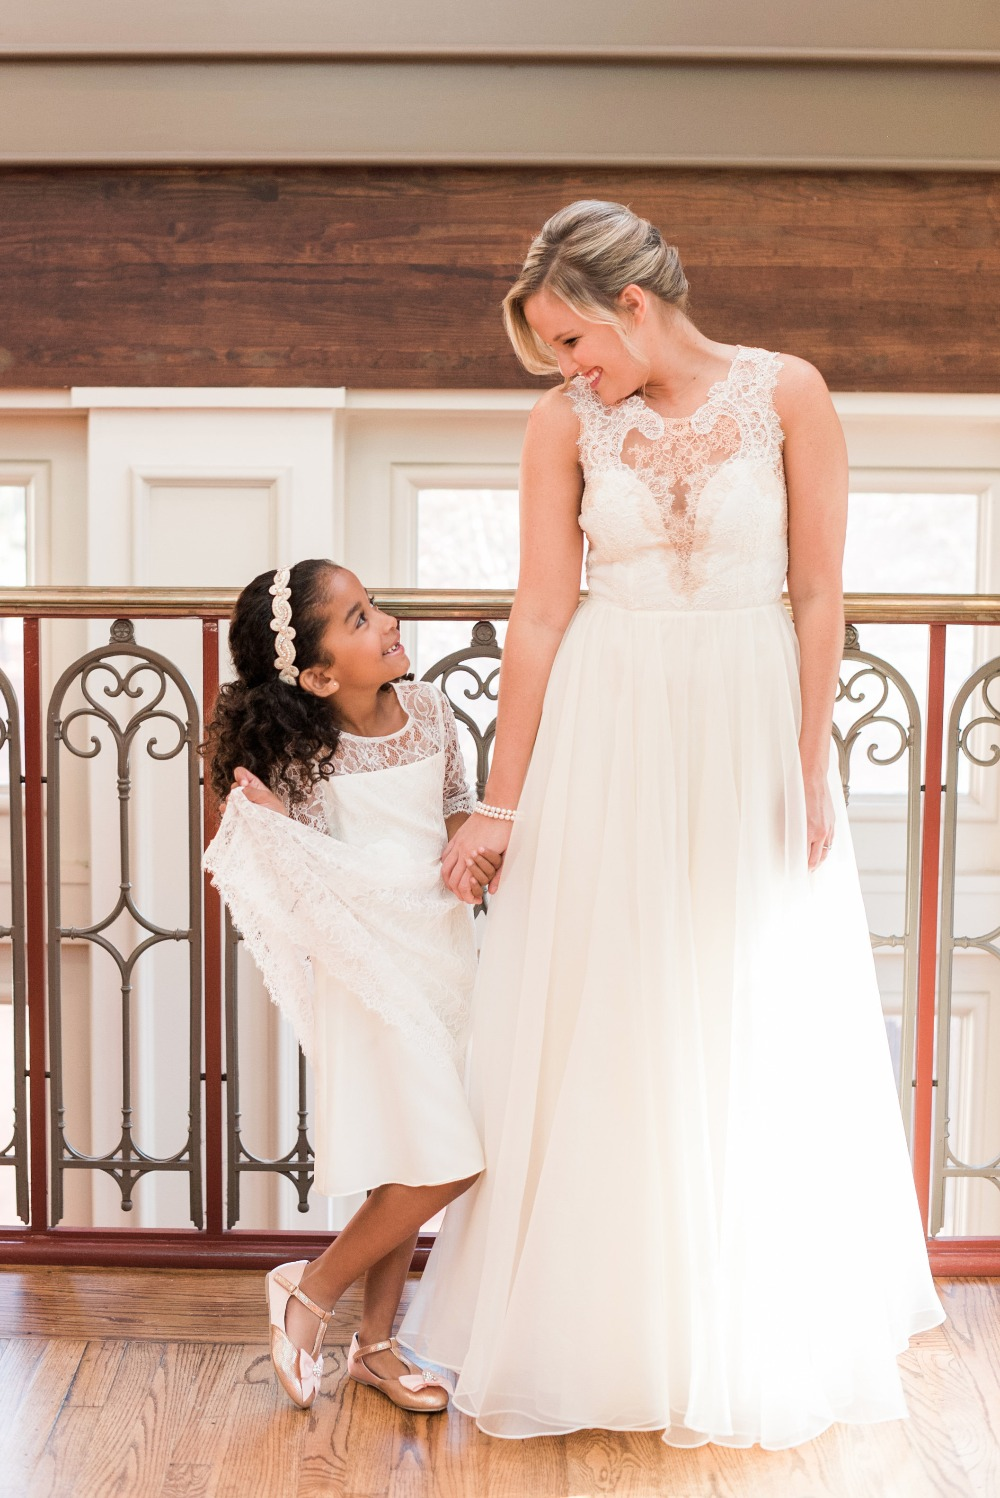 adorable bride and her flower girl